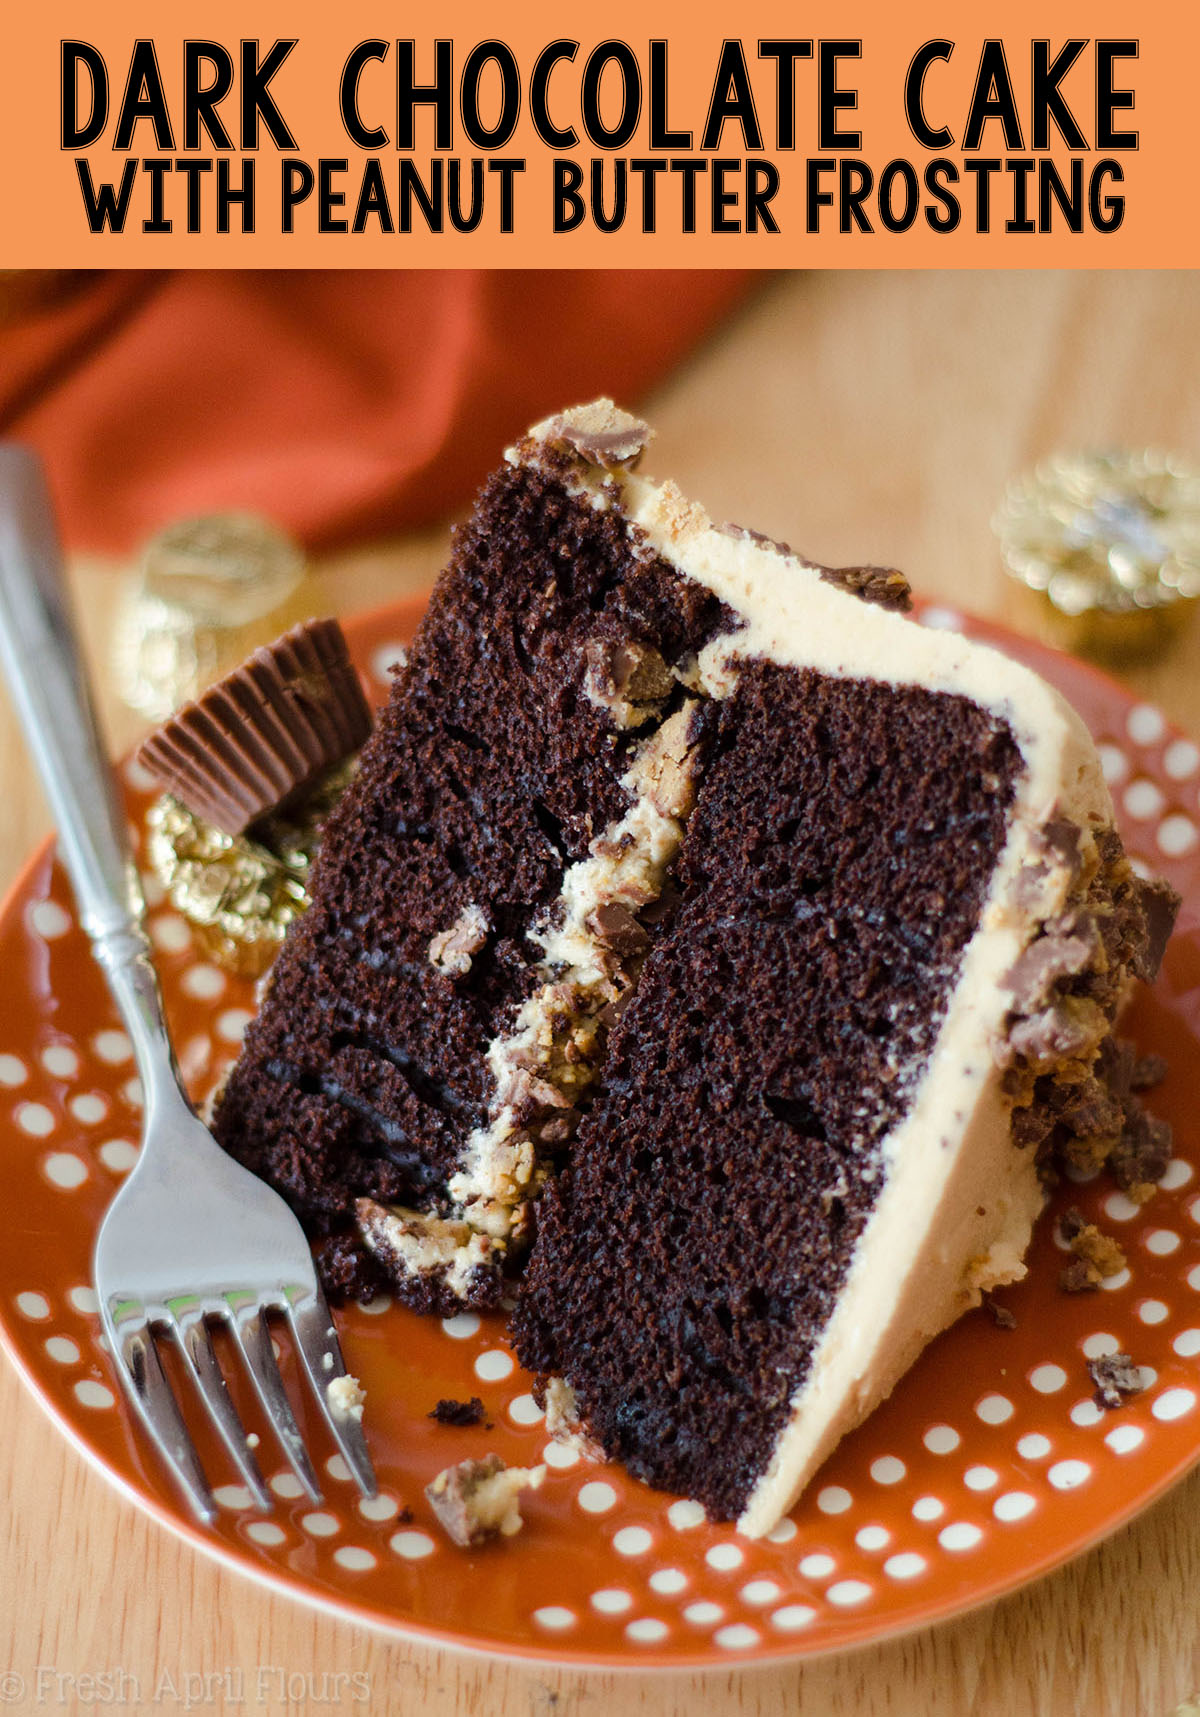 An easy two-layer dark chocolate cake covered in creamy, dreamy peanut butter frosting, all from scratch!